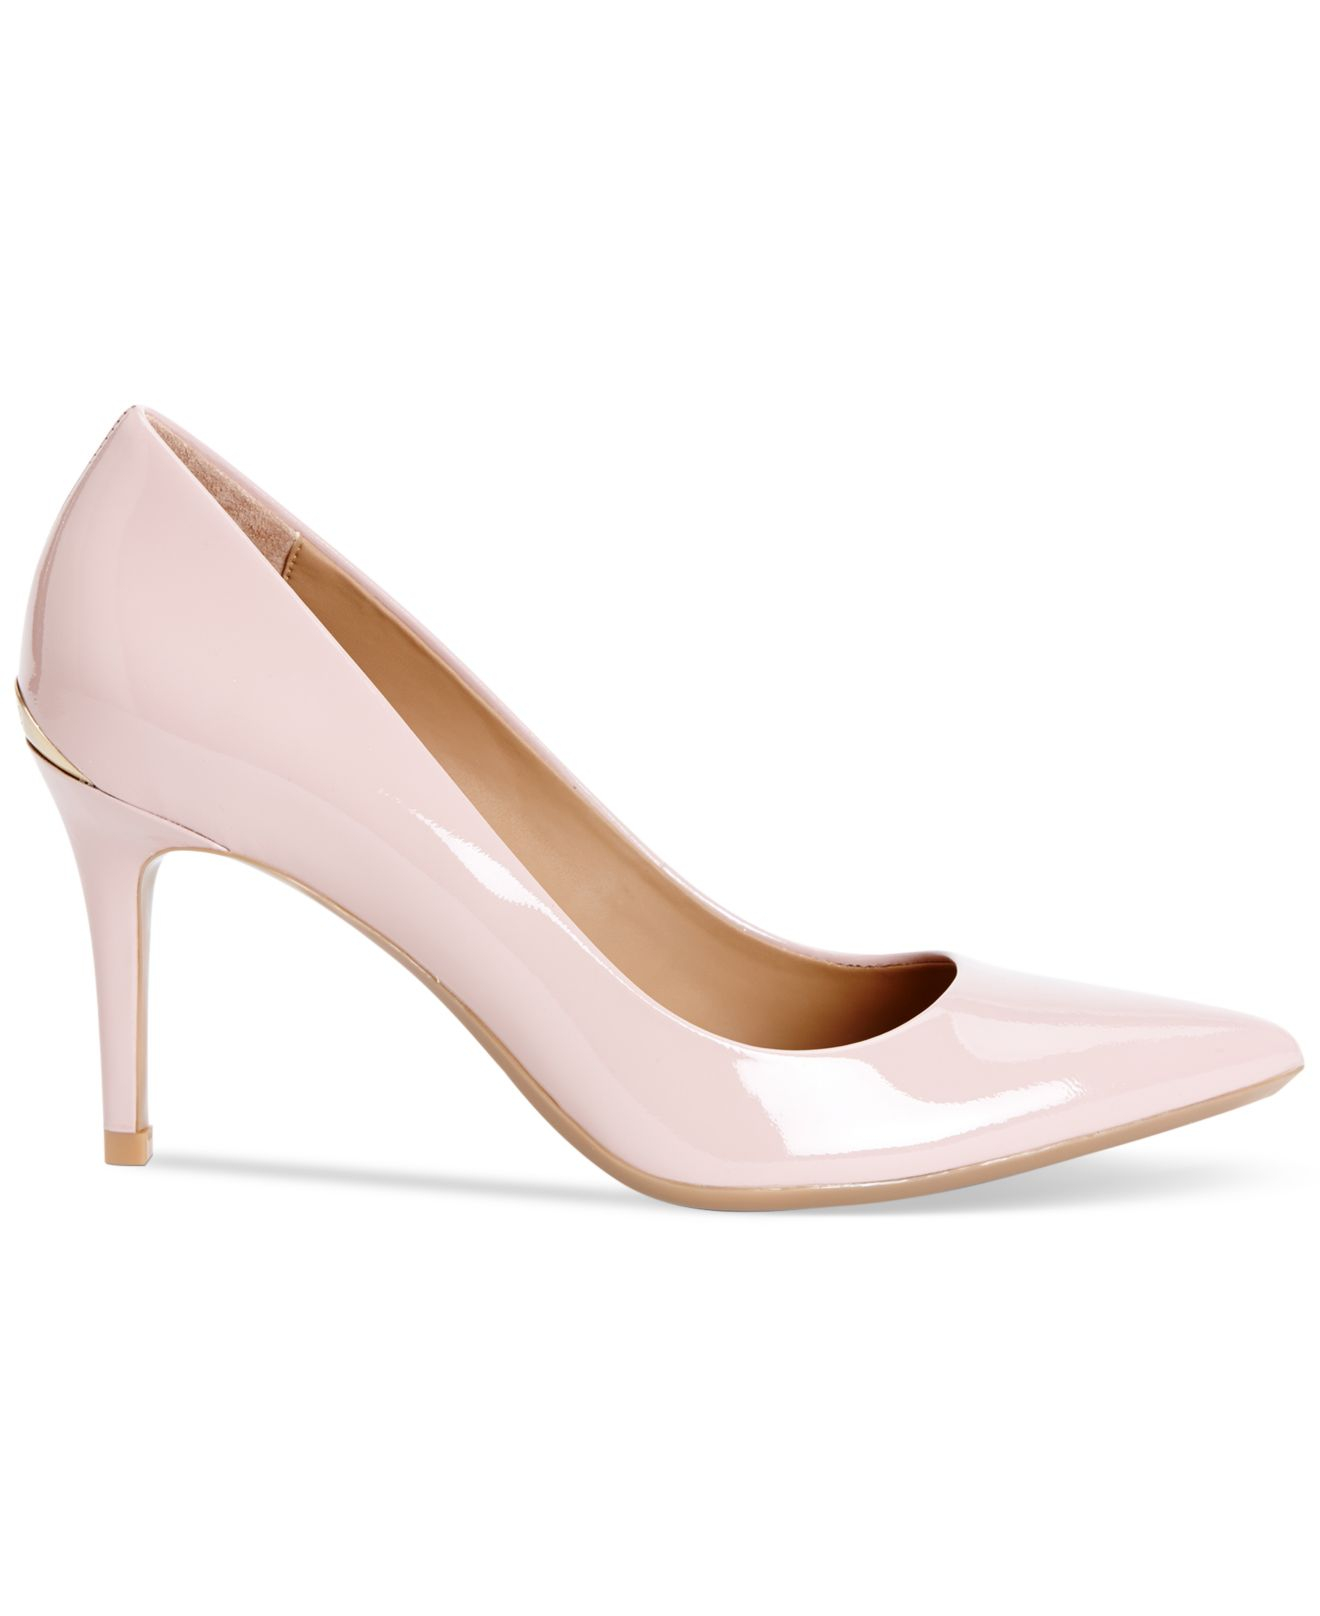 c7d92cd00e58 Lyst - Calvin Klein Women s Gayle Pointed Toe Pumps in Pink